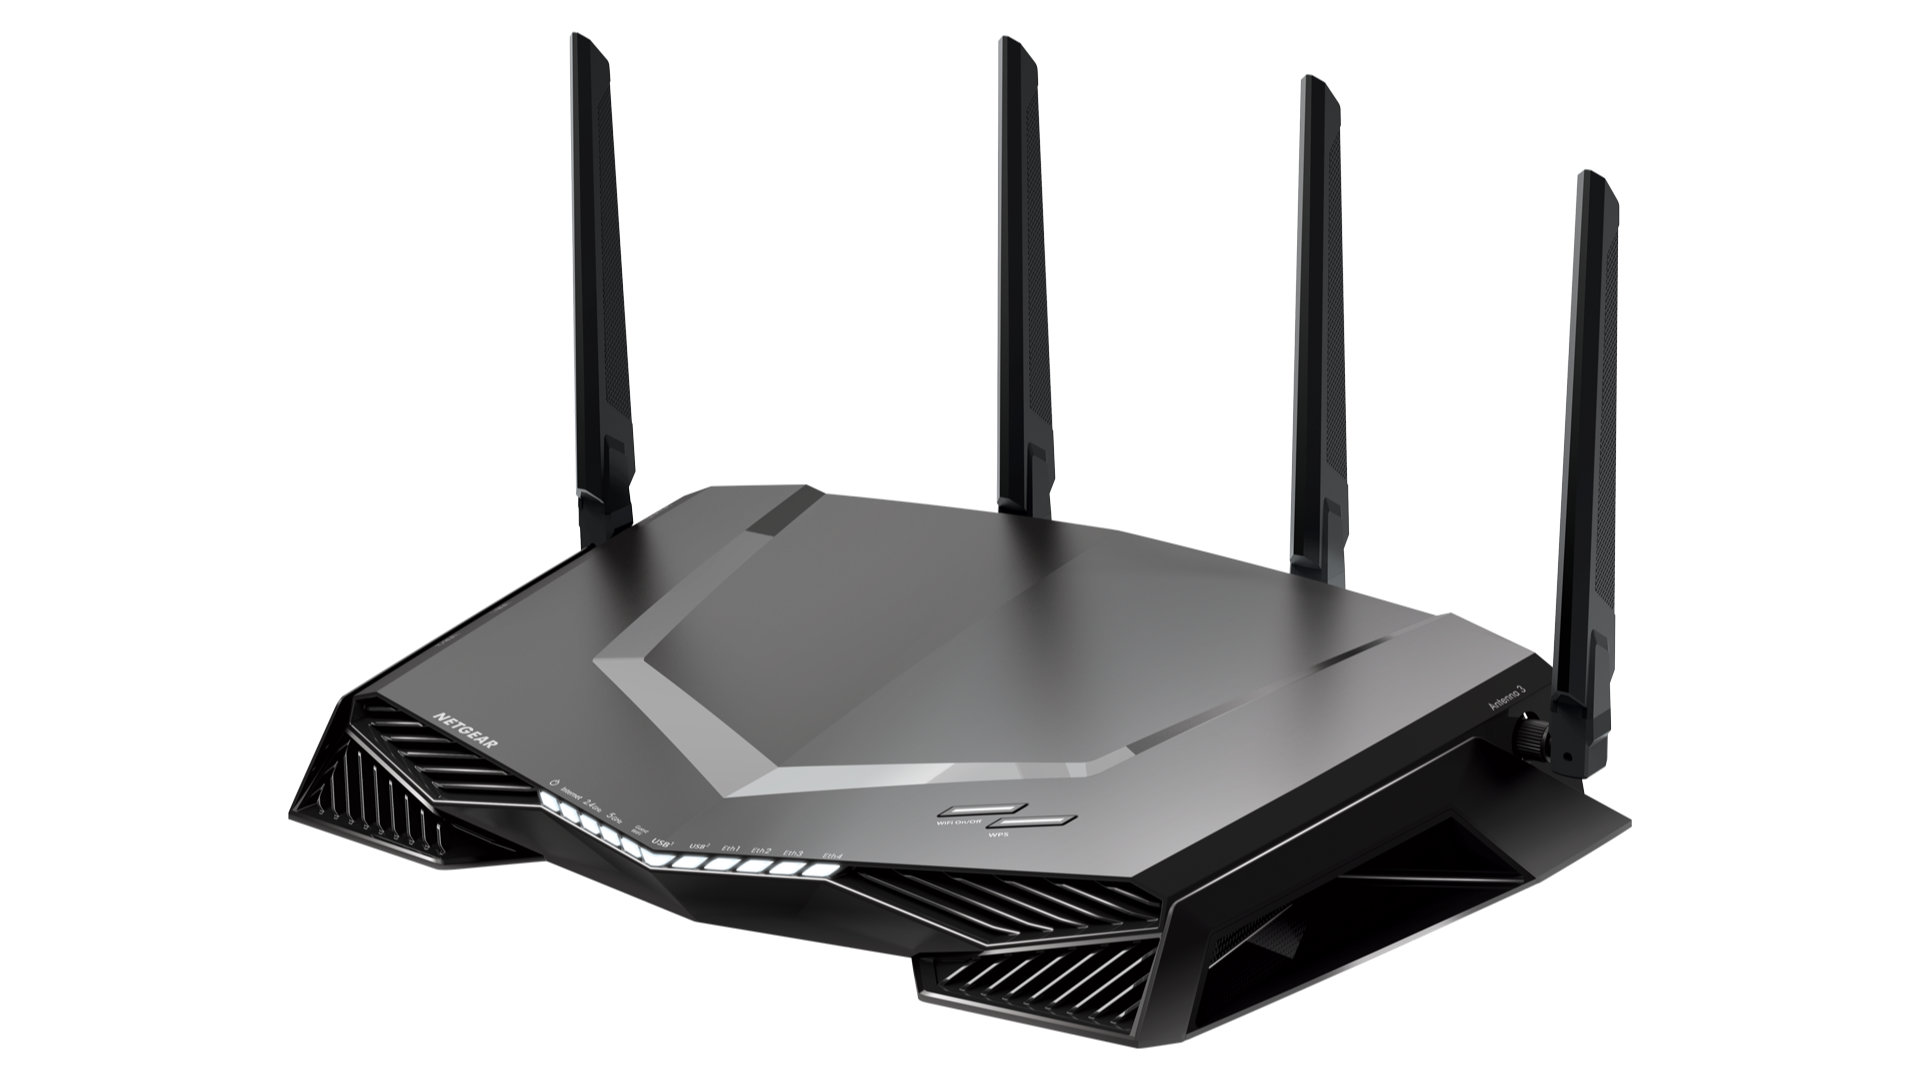 It's not just GPUs suffering chip shortages, there's a year-long waiting list for routers